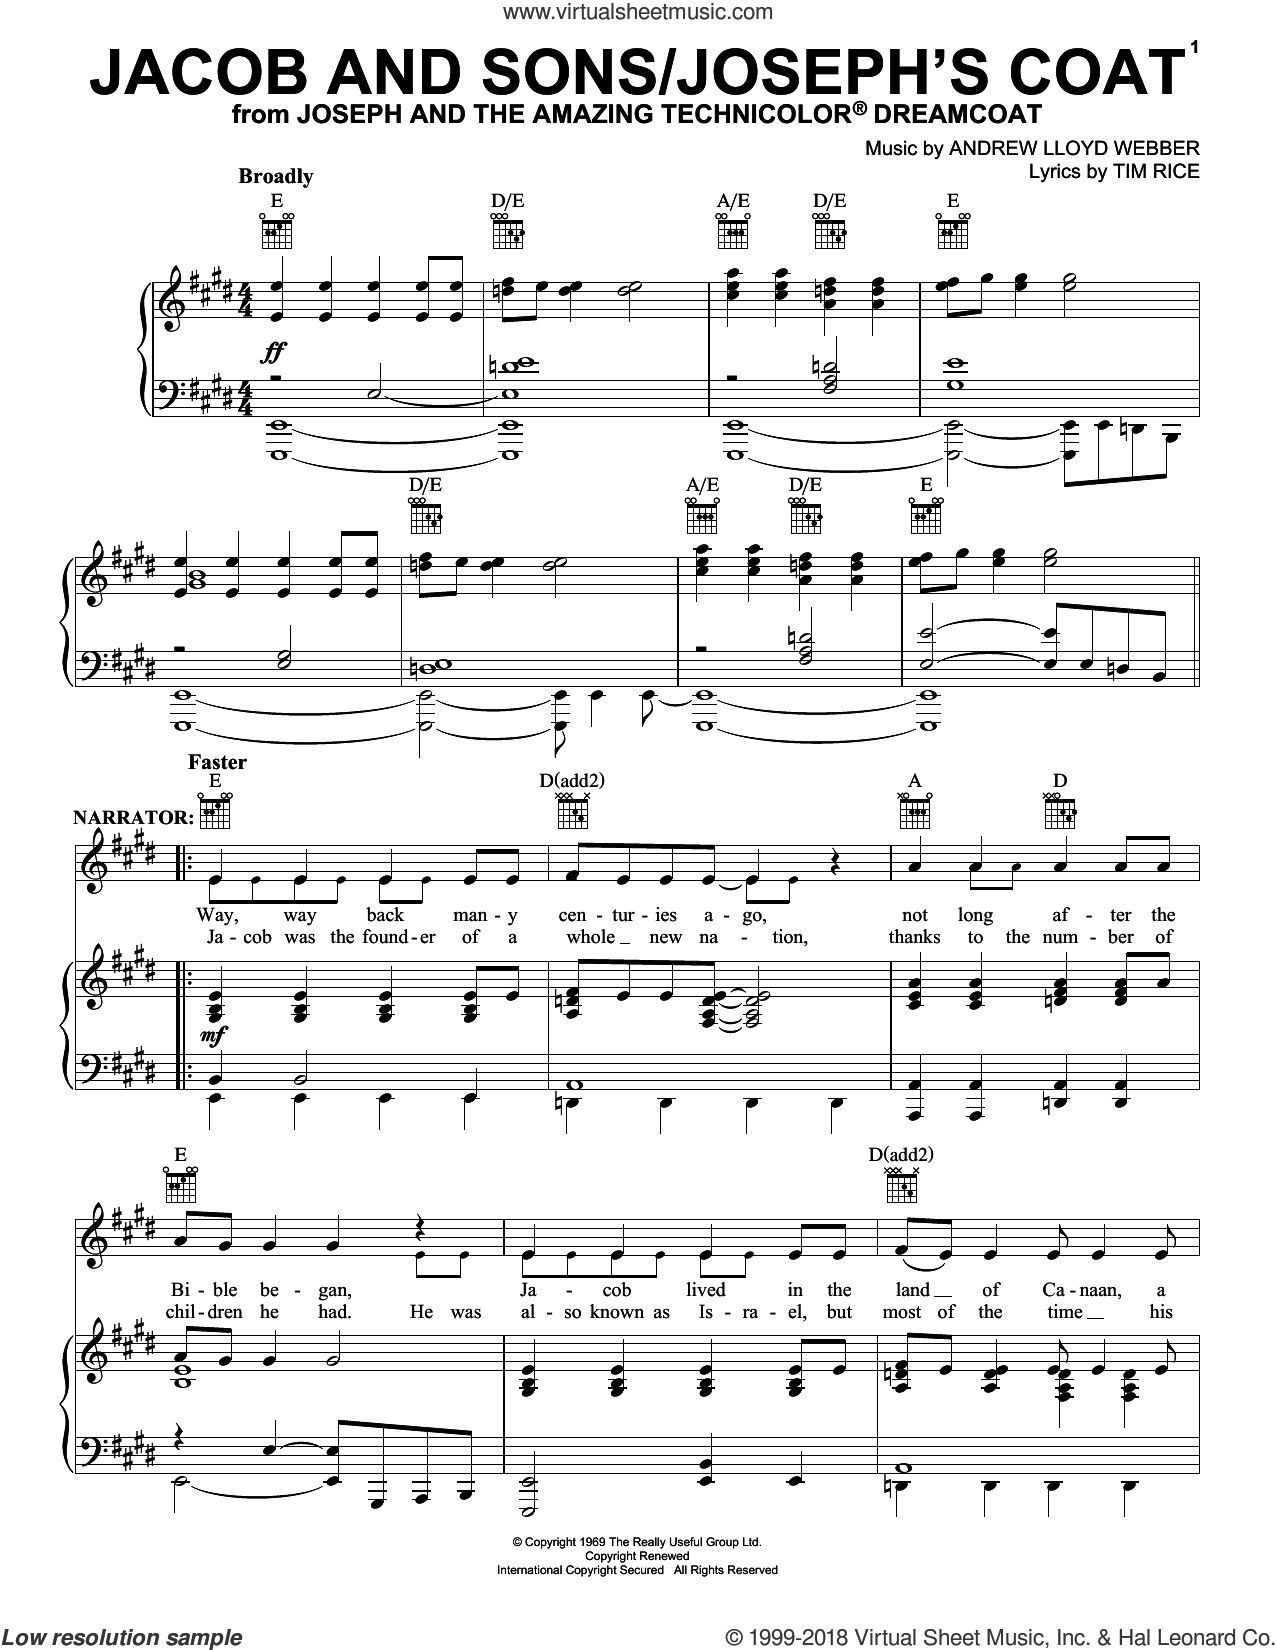 Jacob And Sons/Joseph's Coat sheet music for voice, piano or guitar by Andrew Lloyd Webber and Tim Rice, intermediate skill level